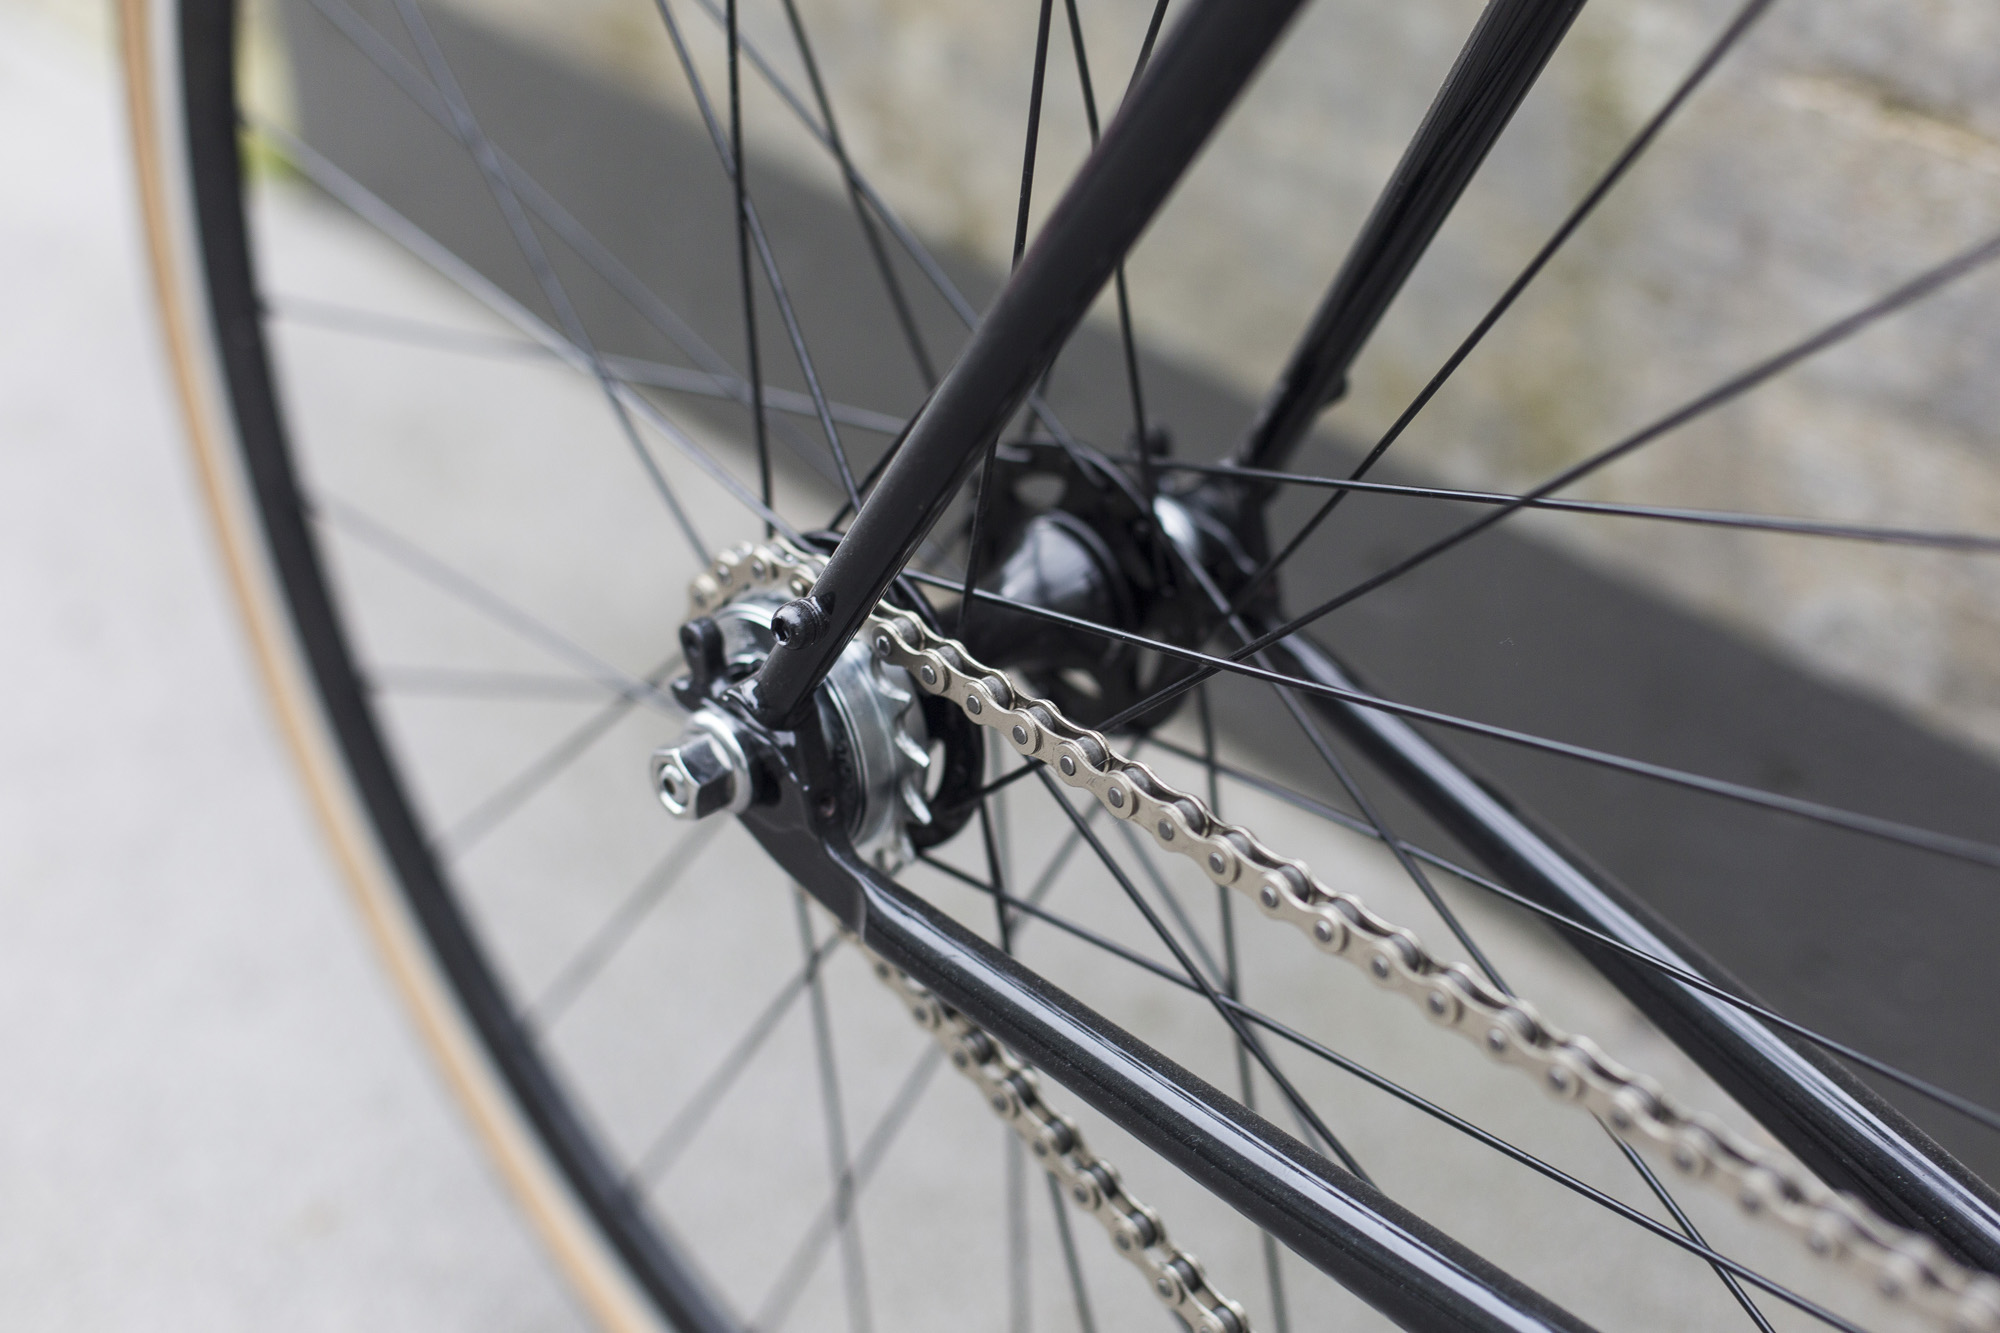 seabass-cycles-bikes-instore-5-february-2019-brother-cycles-all-day-00133.jpg